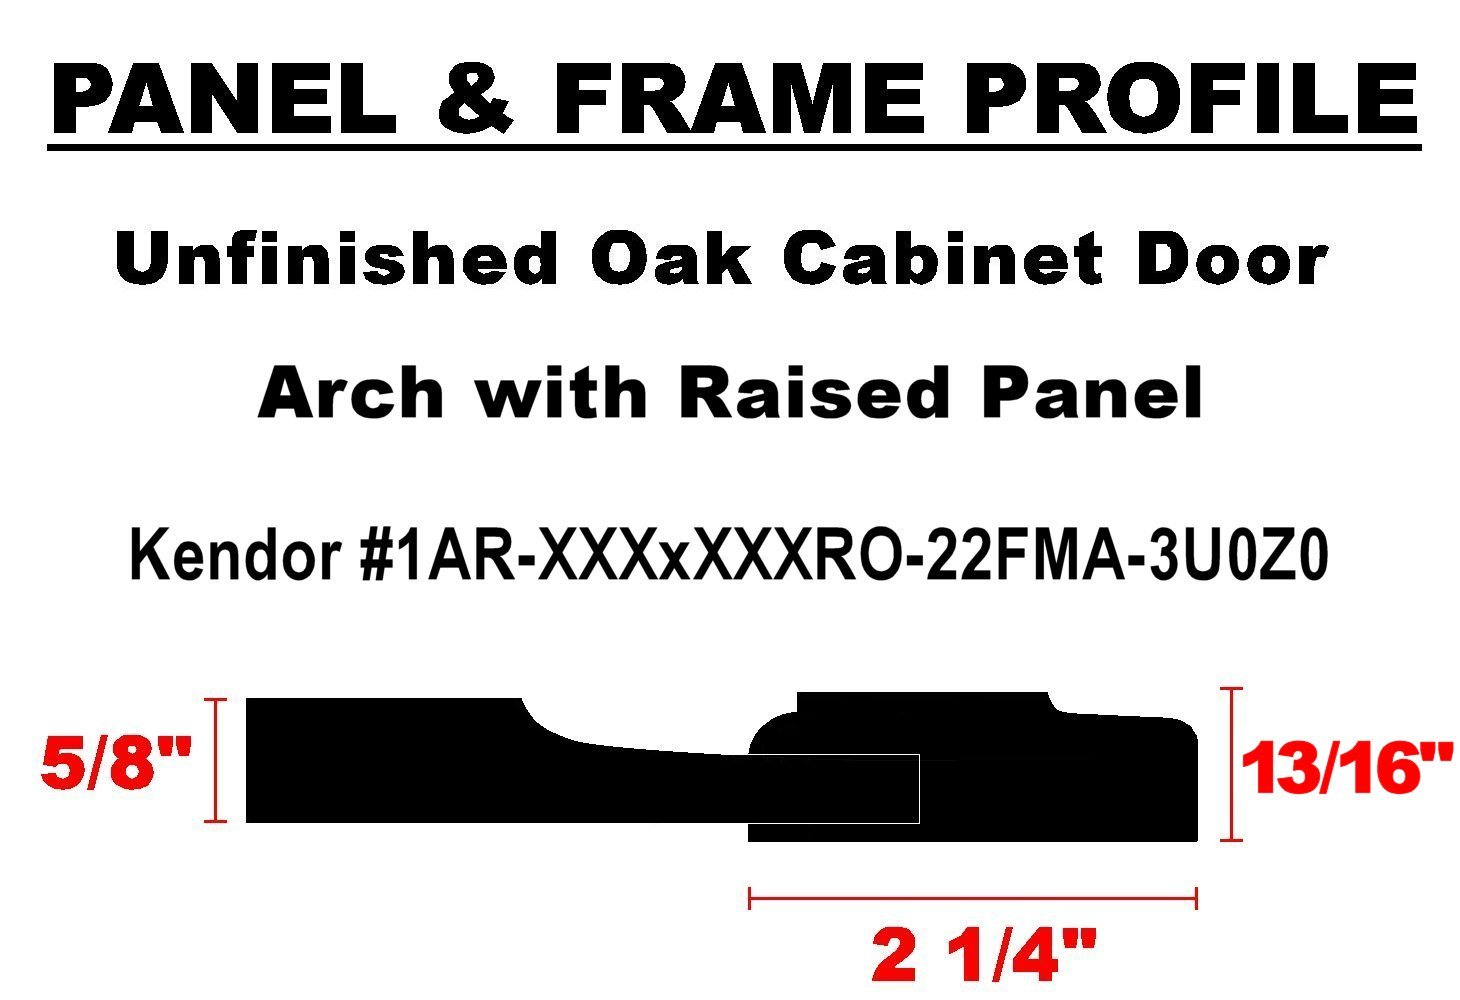 18H x 13W Unfinished Oak Arch Top Cabinet Door by Kendor